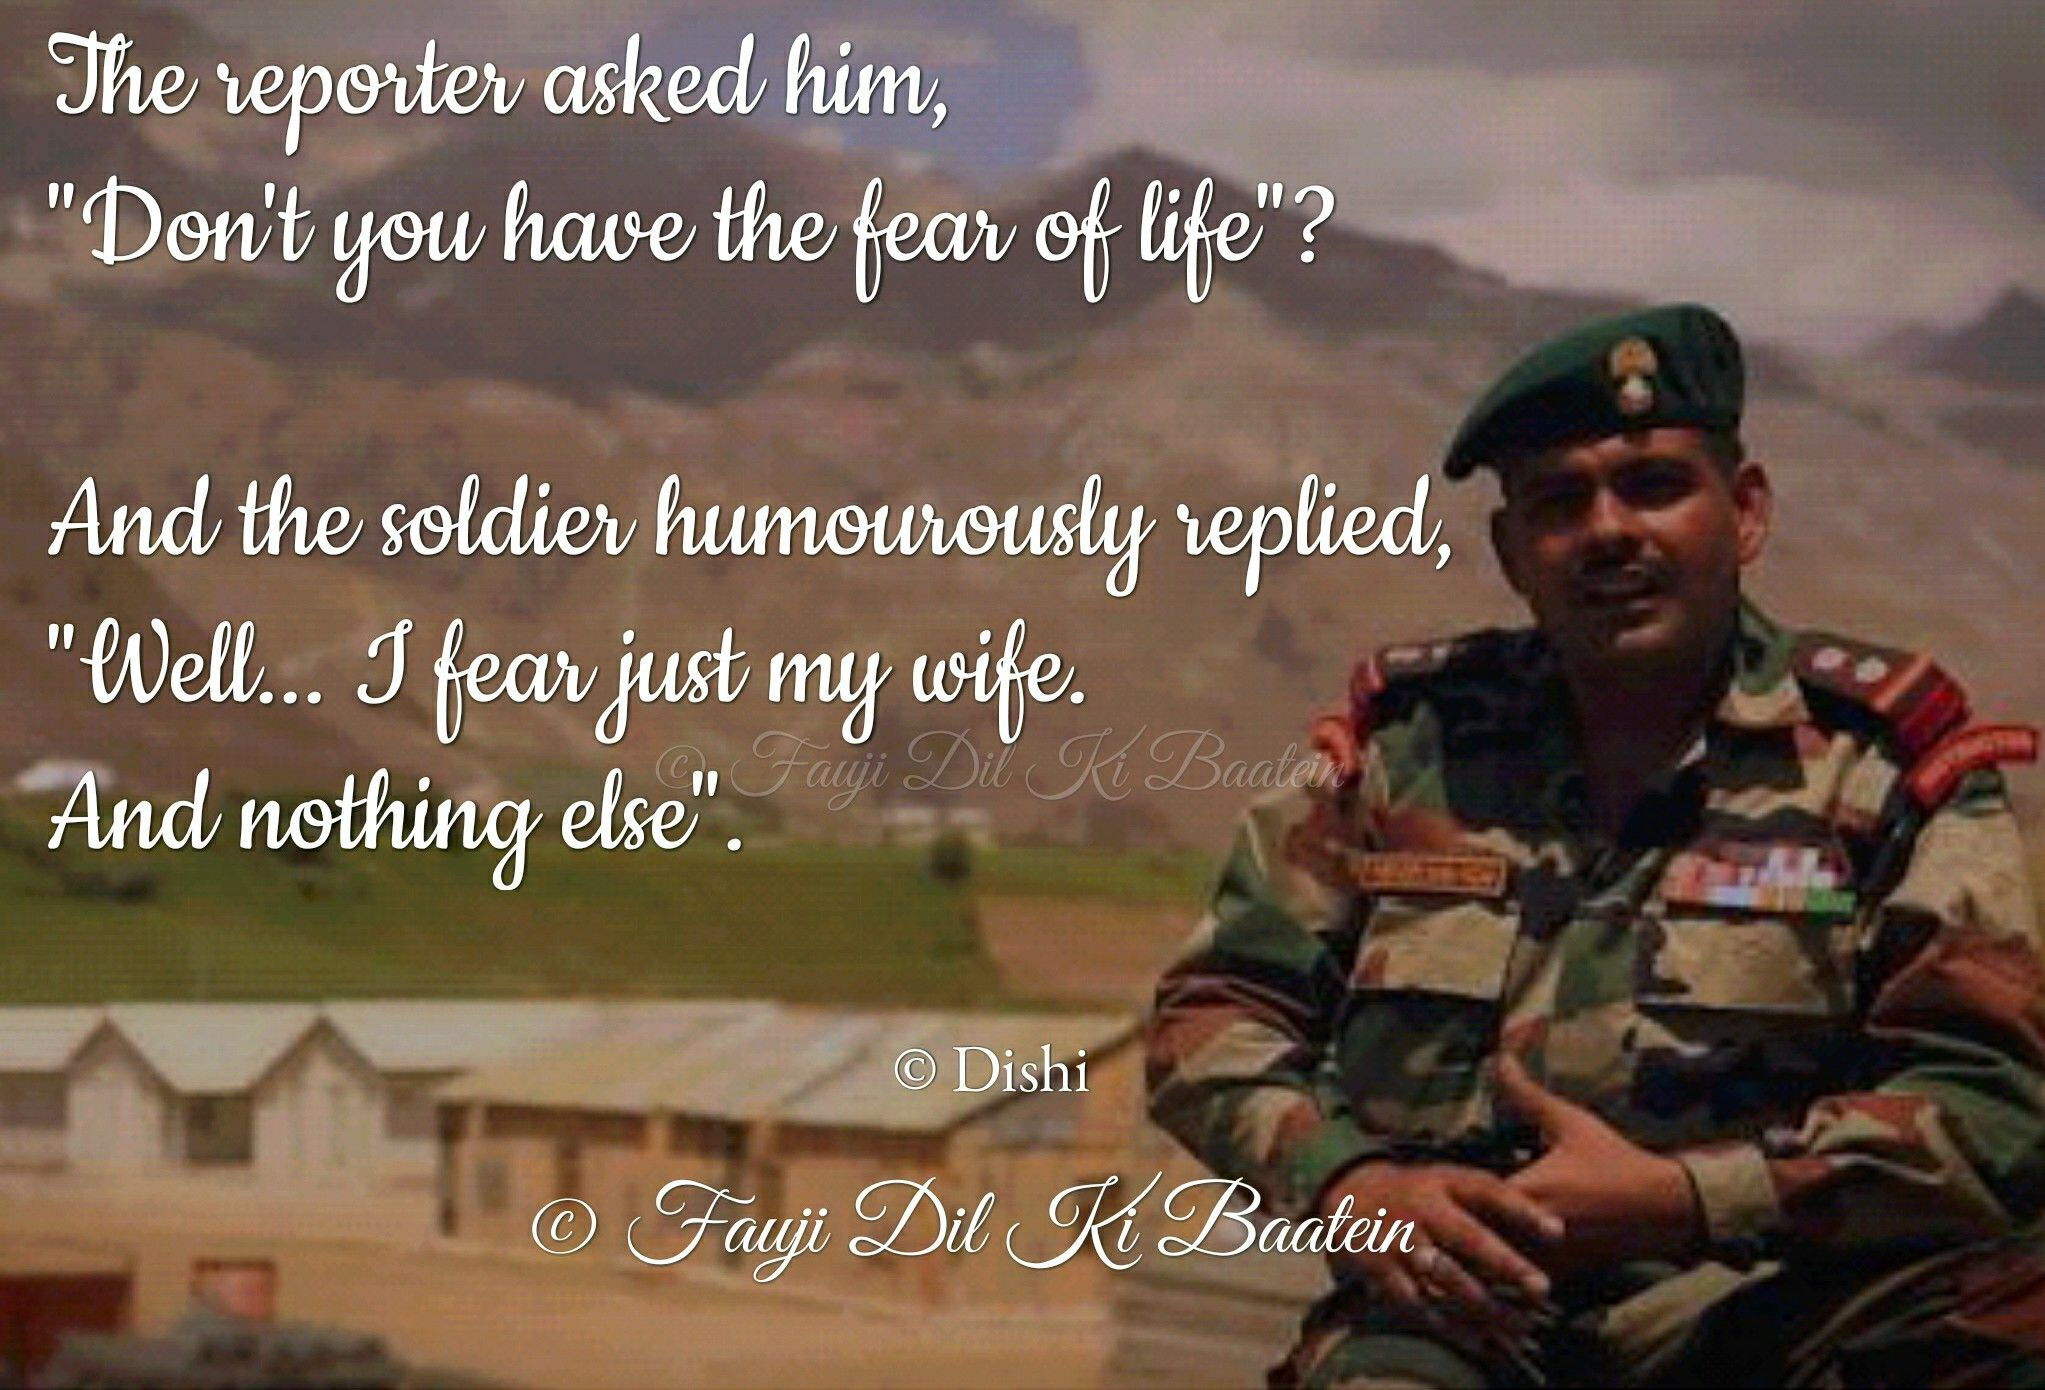 Pin By Dishi Bora On Fauji Dil Ki Baatein Thoughts On A Soldier S Life Military Life Quotes Army Life Military Life